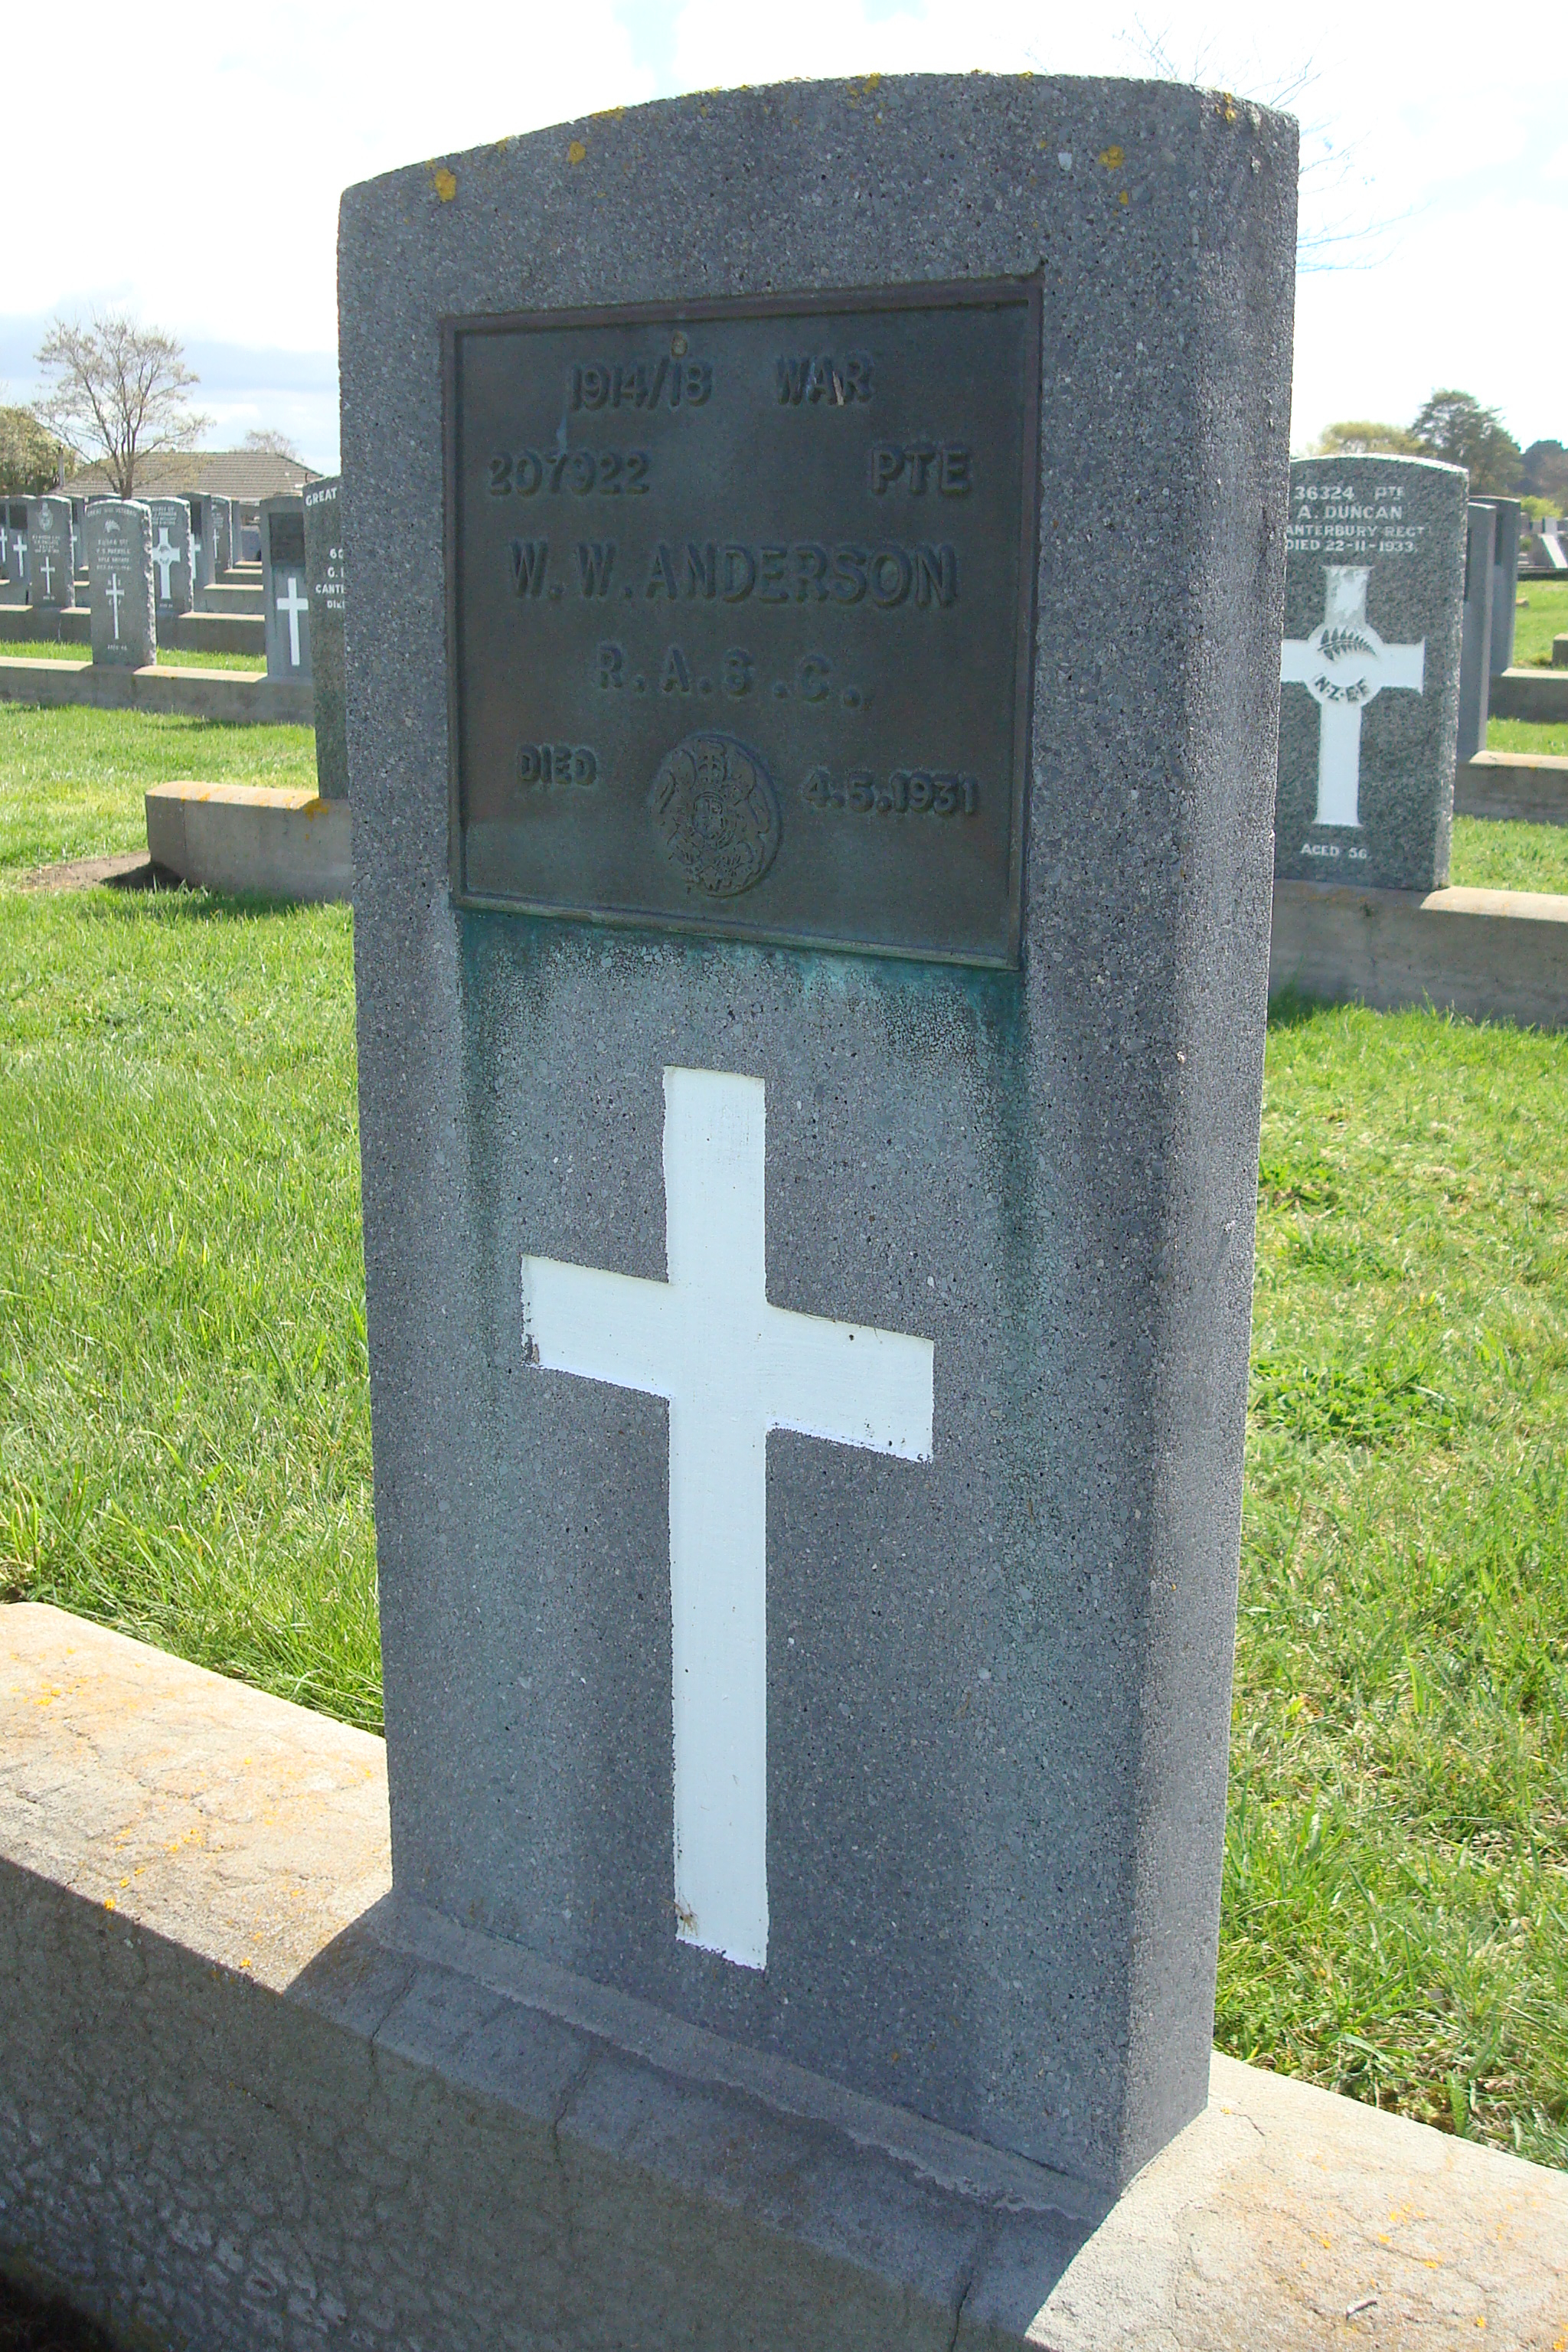 Grave of William Walter Anderson